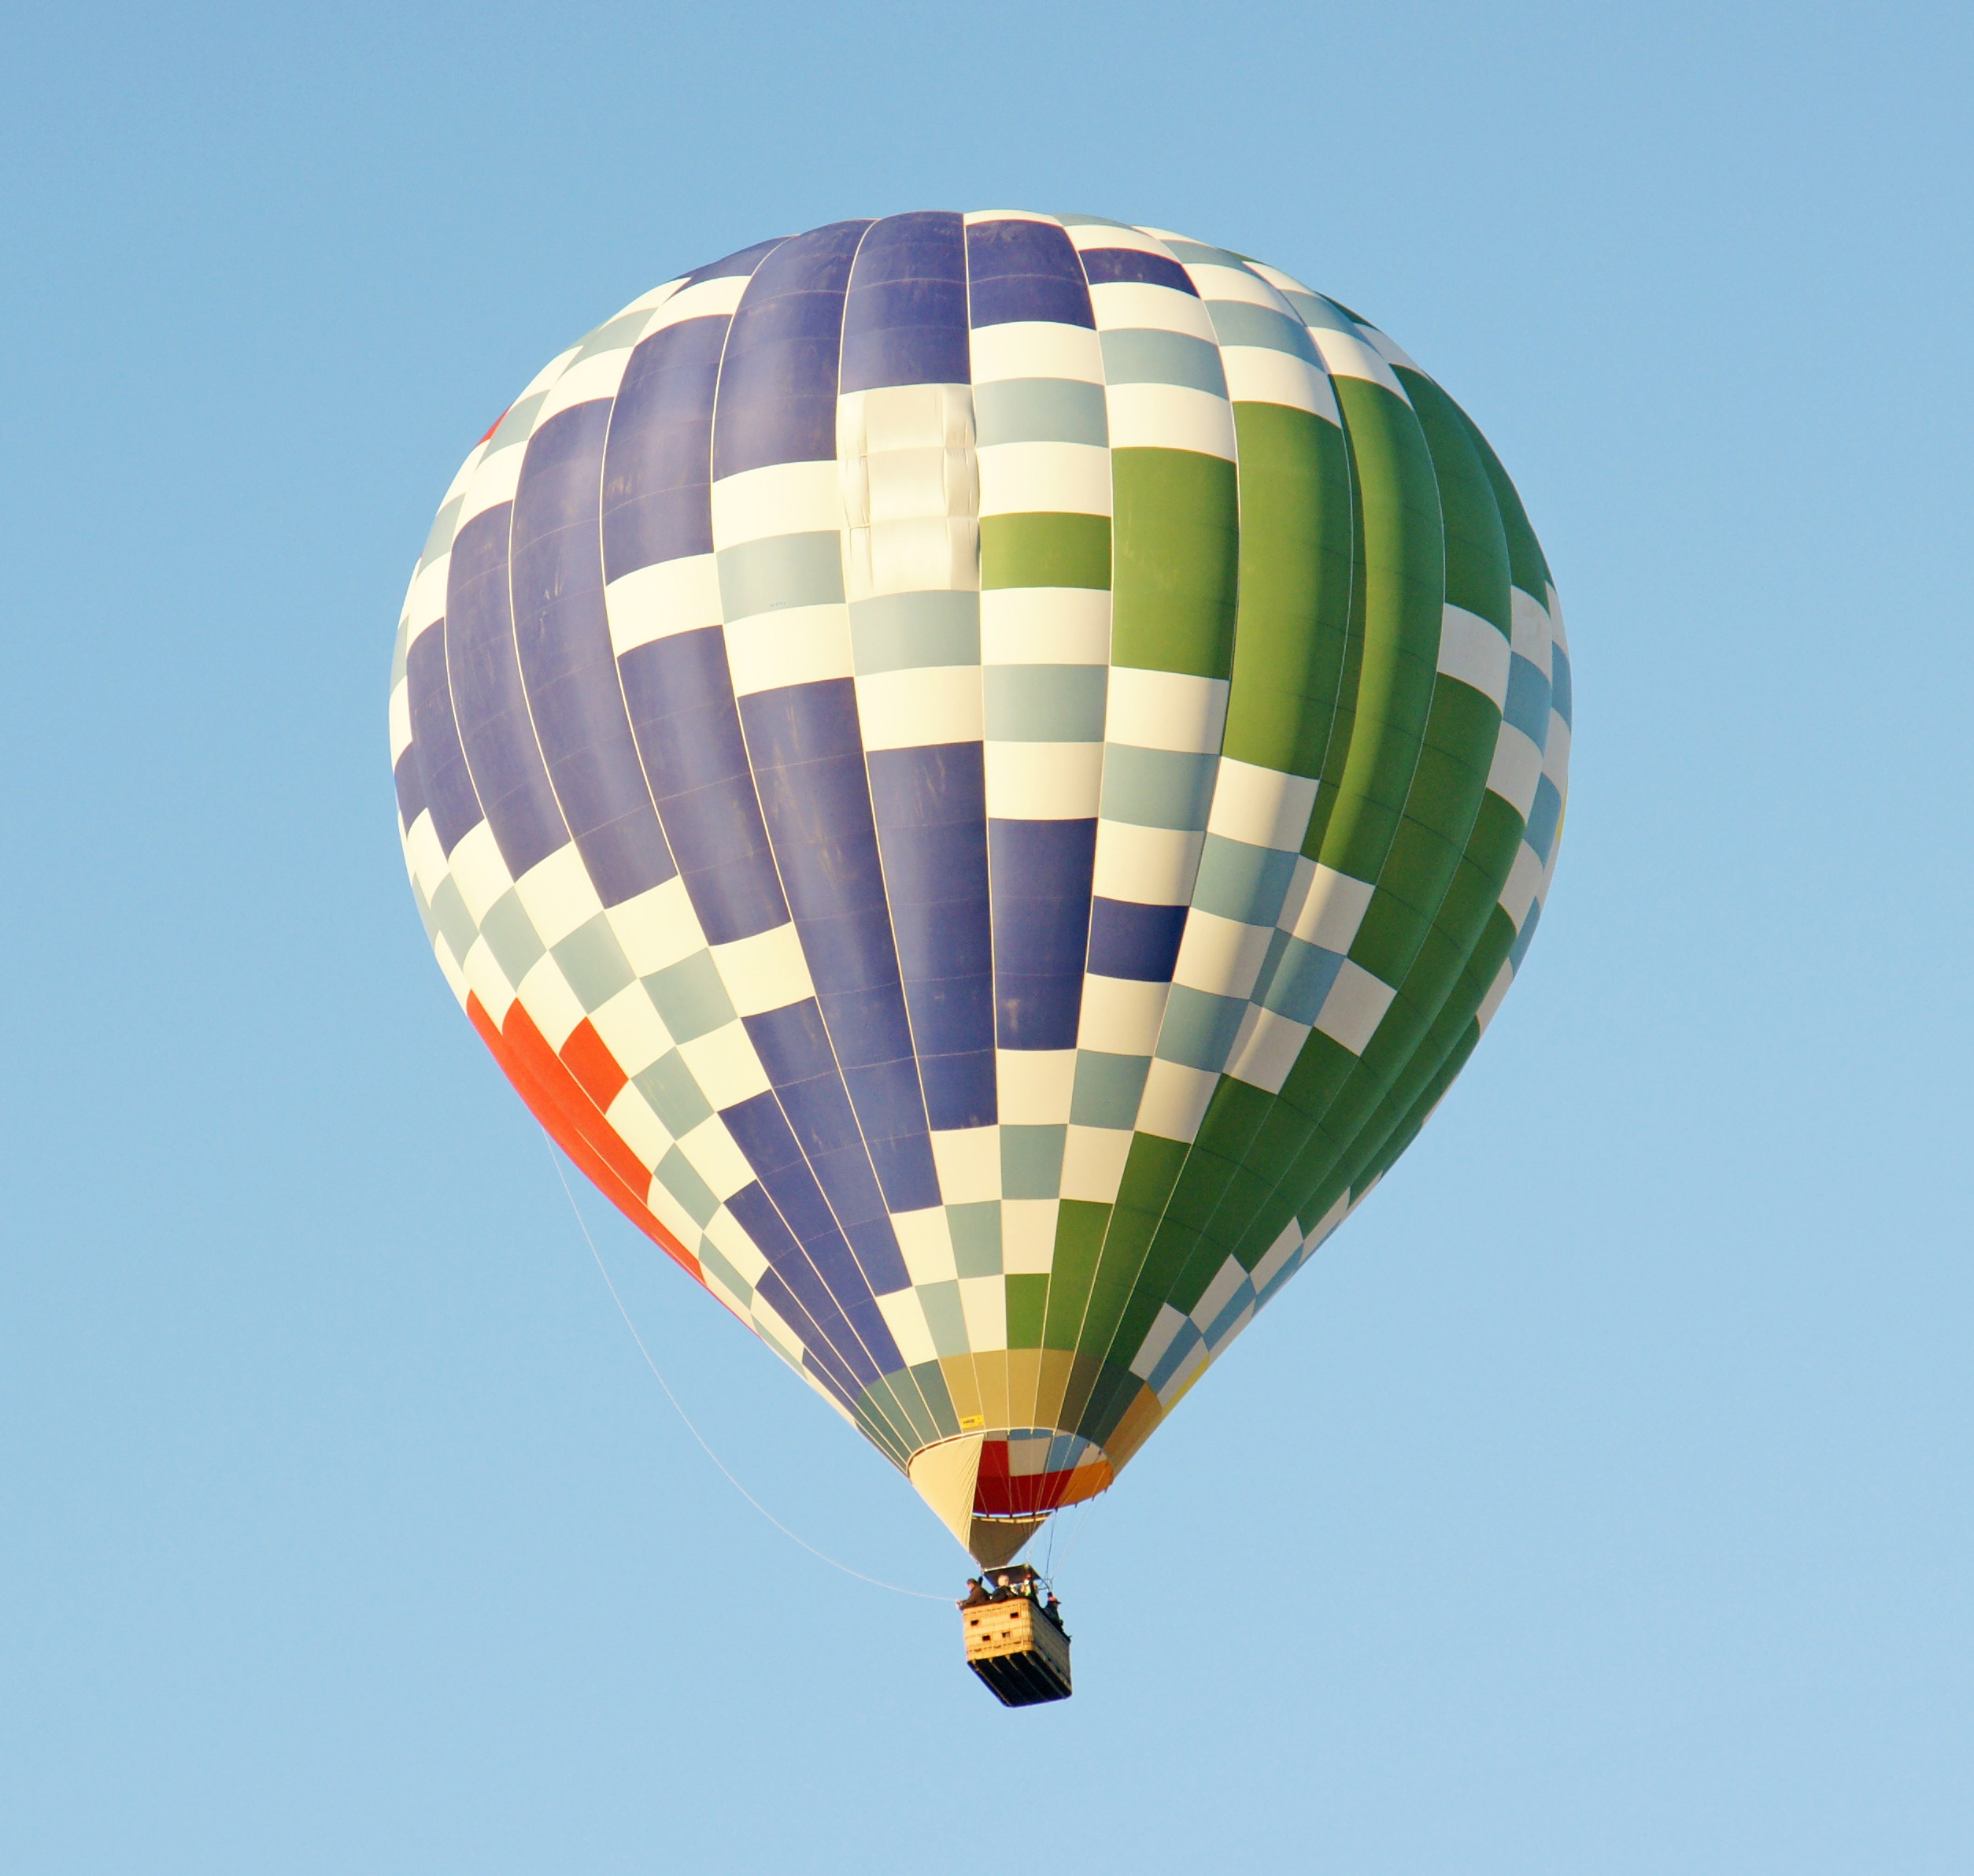 aibf-Single-Balloons-Gallery06